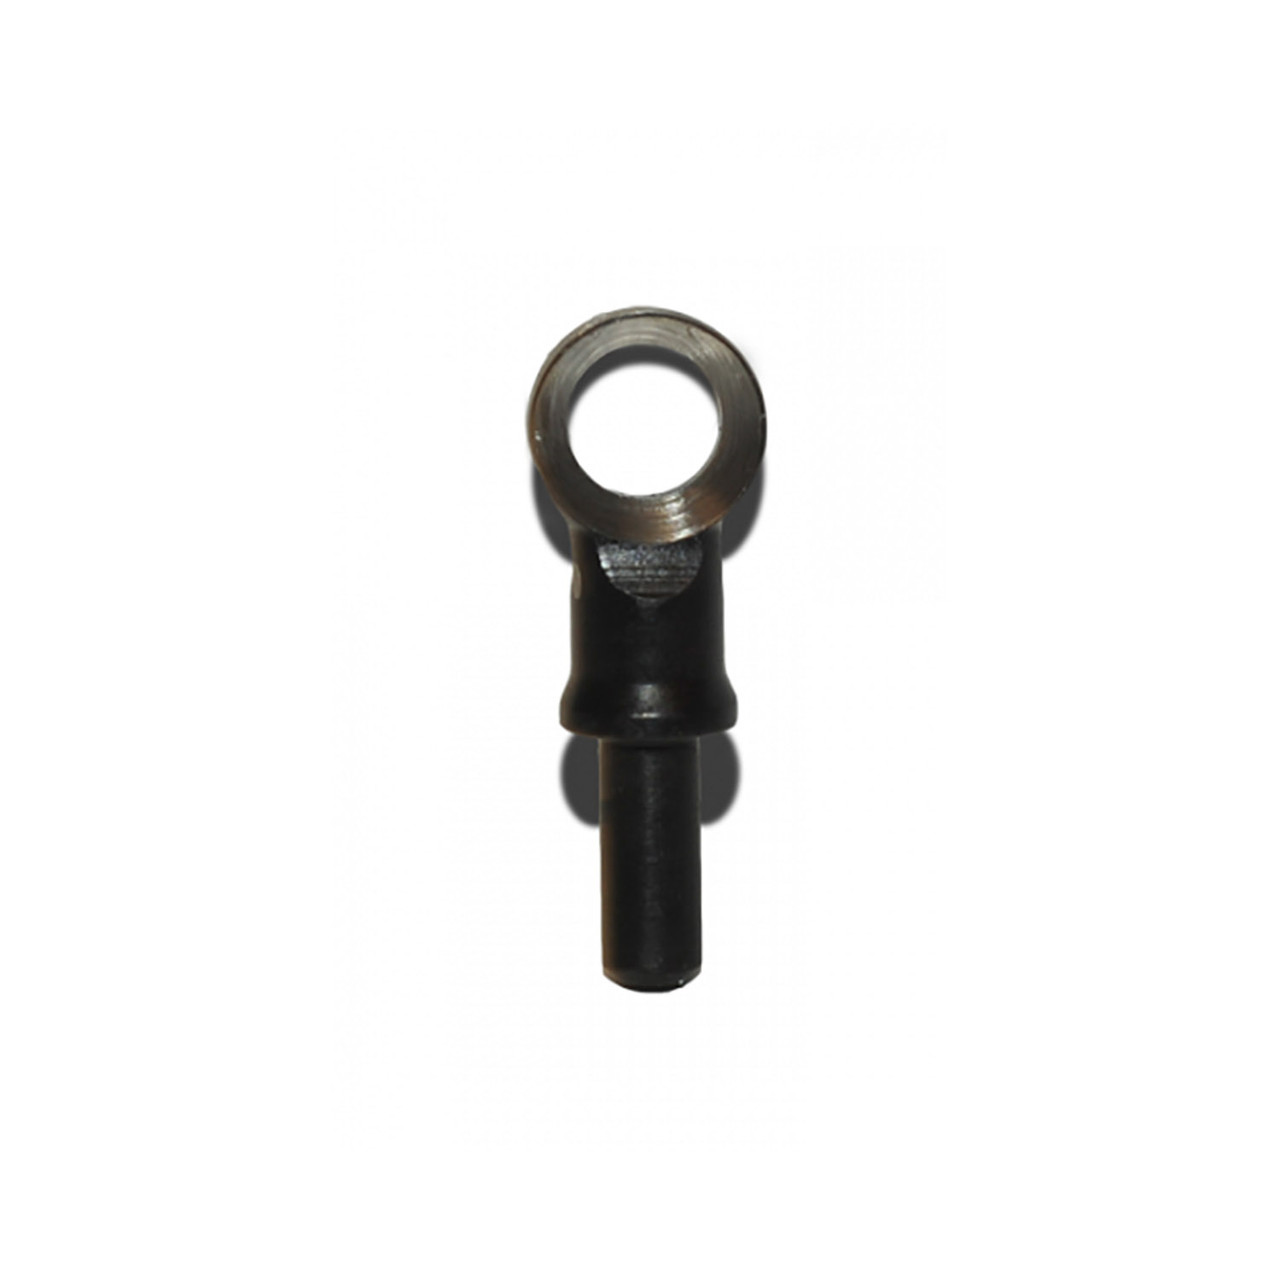 """Oneway # 3 Termite Bit (5/8"""") for End Grain Deep Hollowing Tool"""